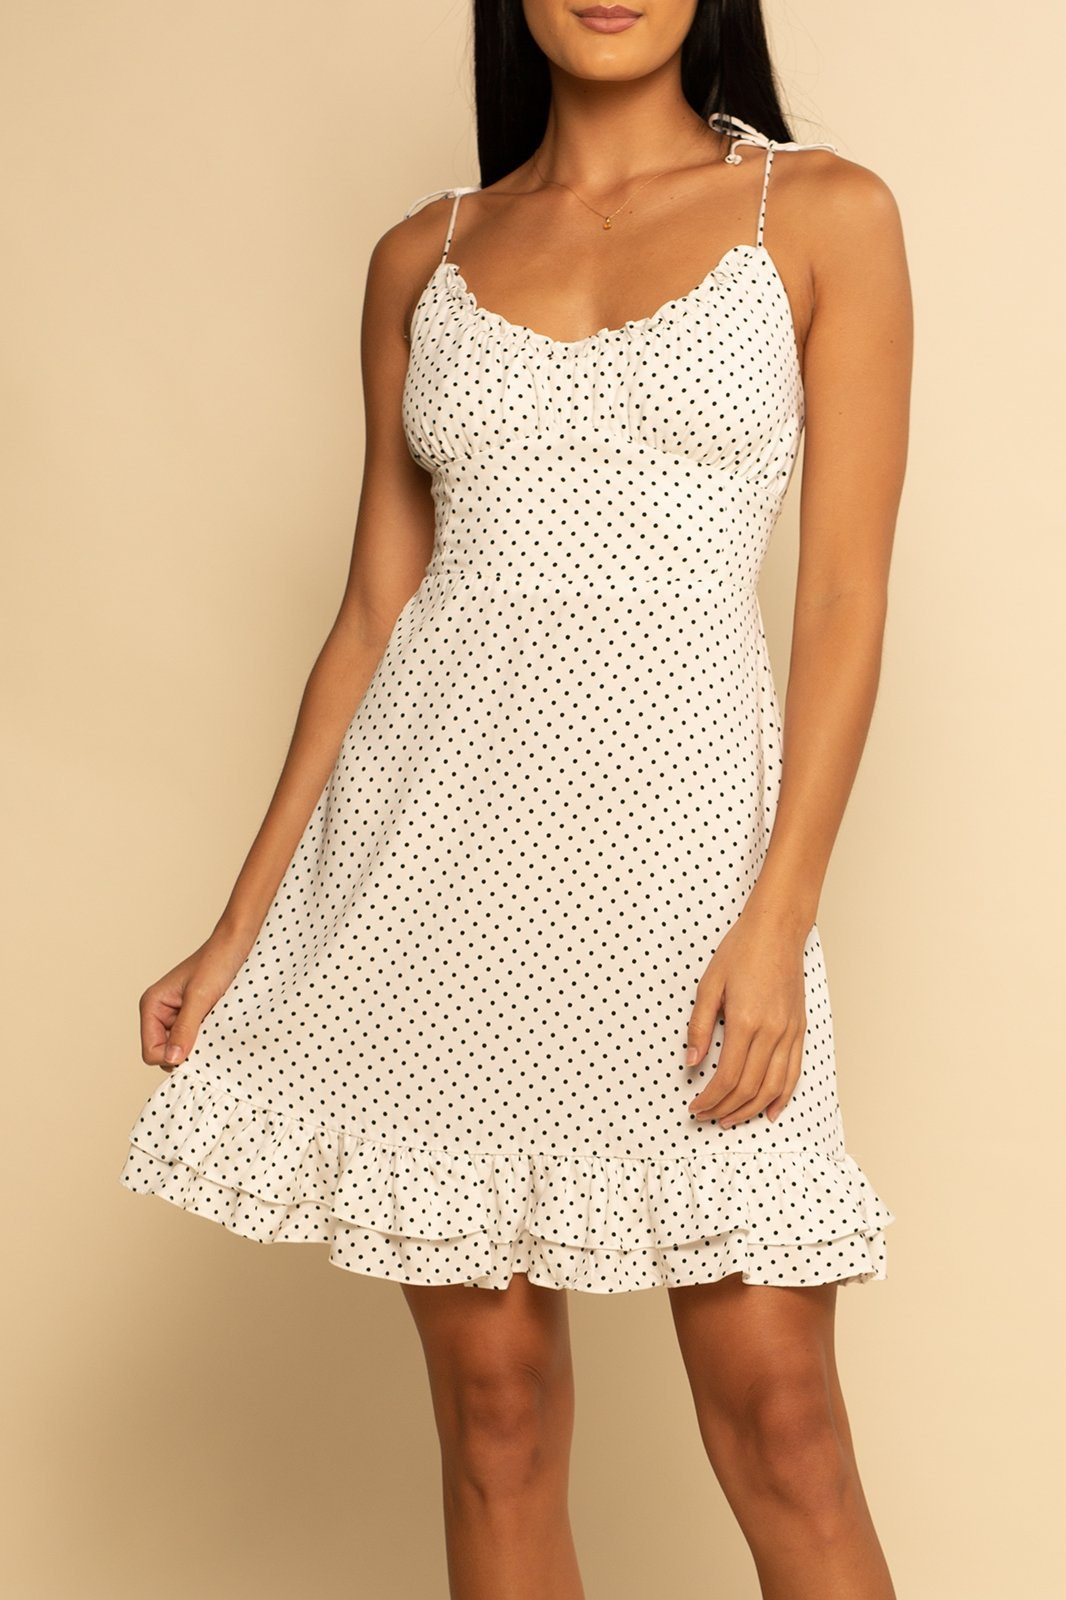 Sicily Tie Shoulder Dress - Polka Dot - Shore